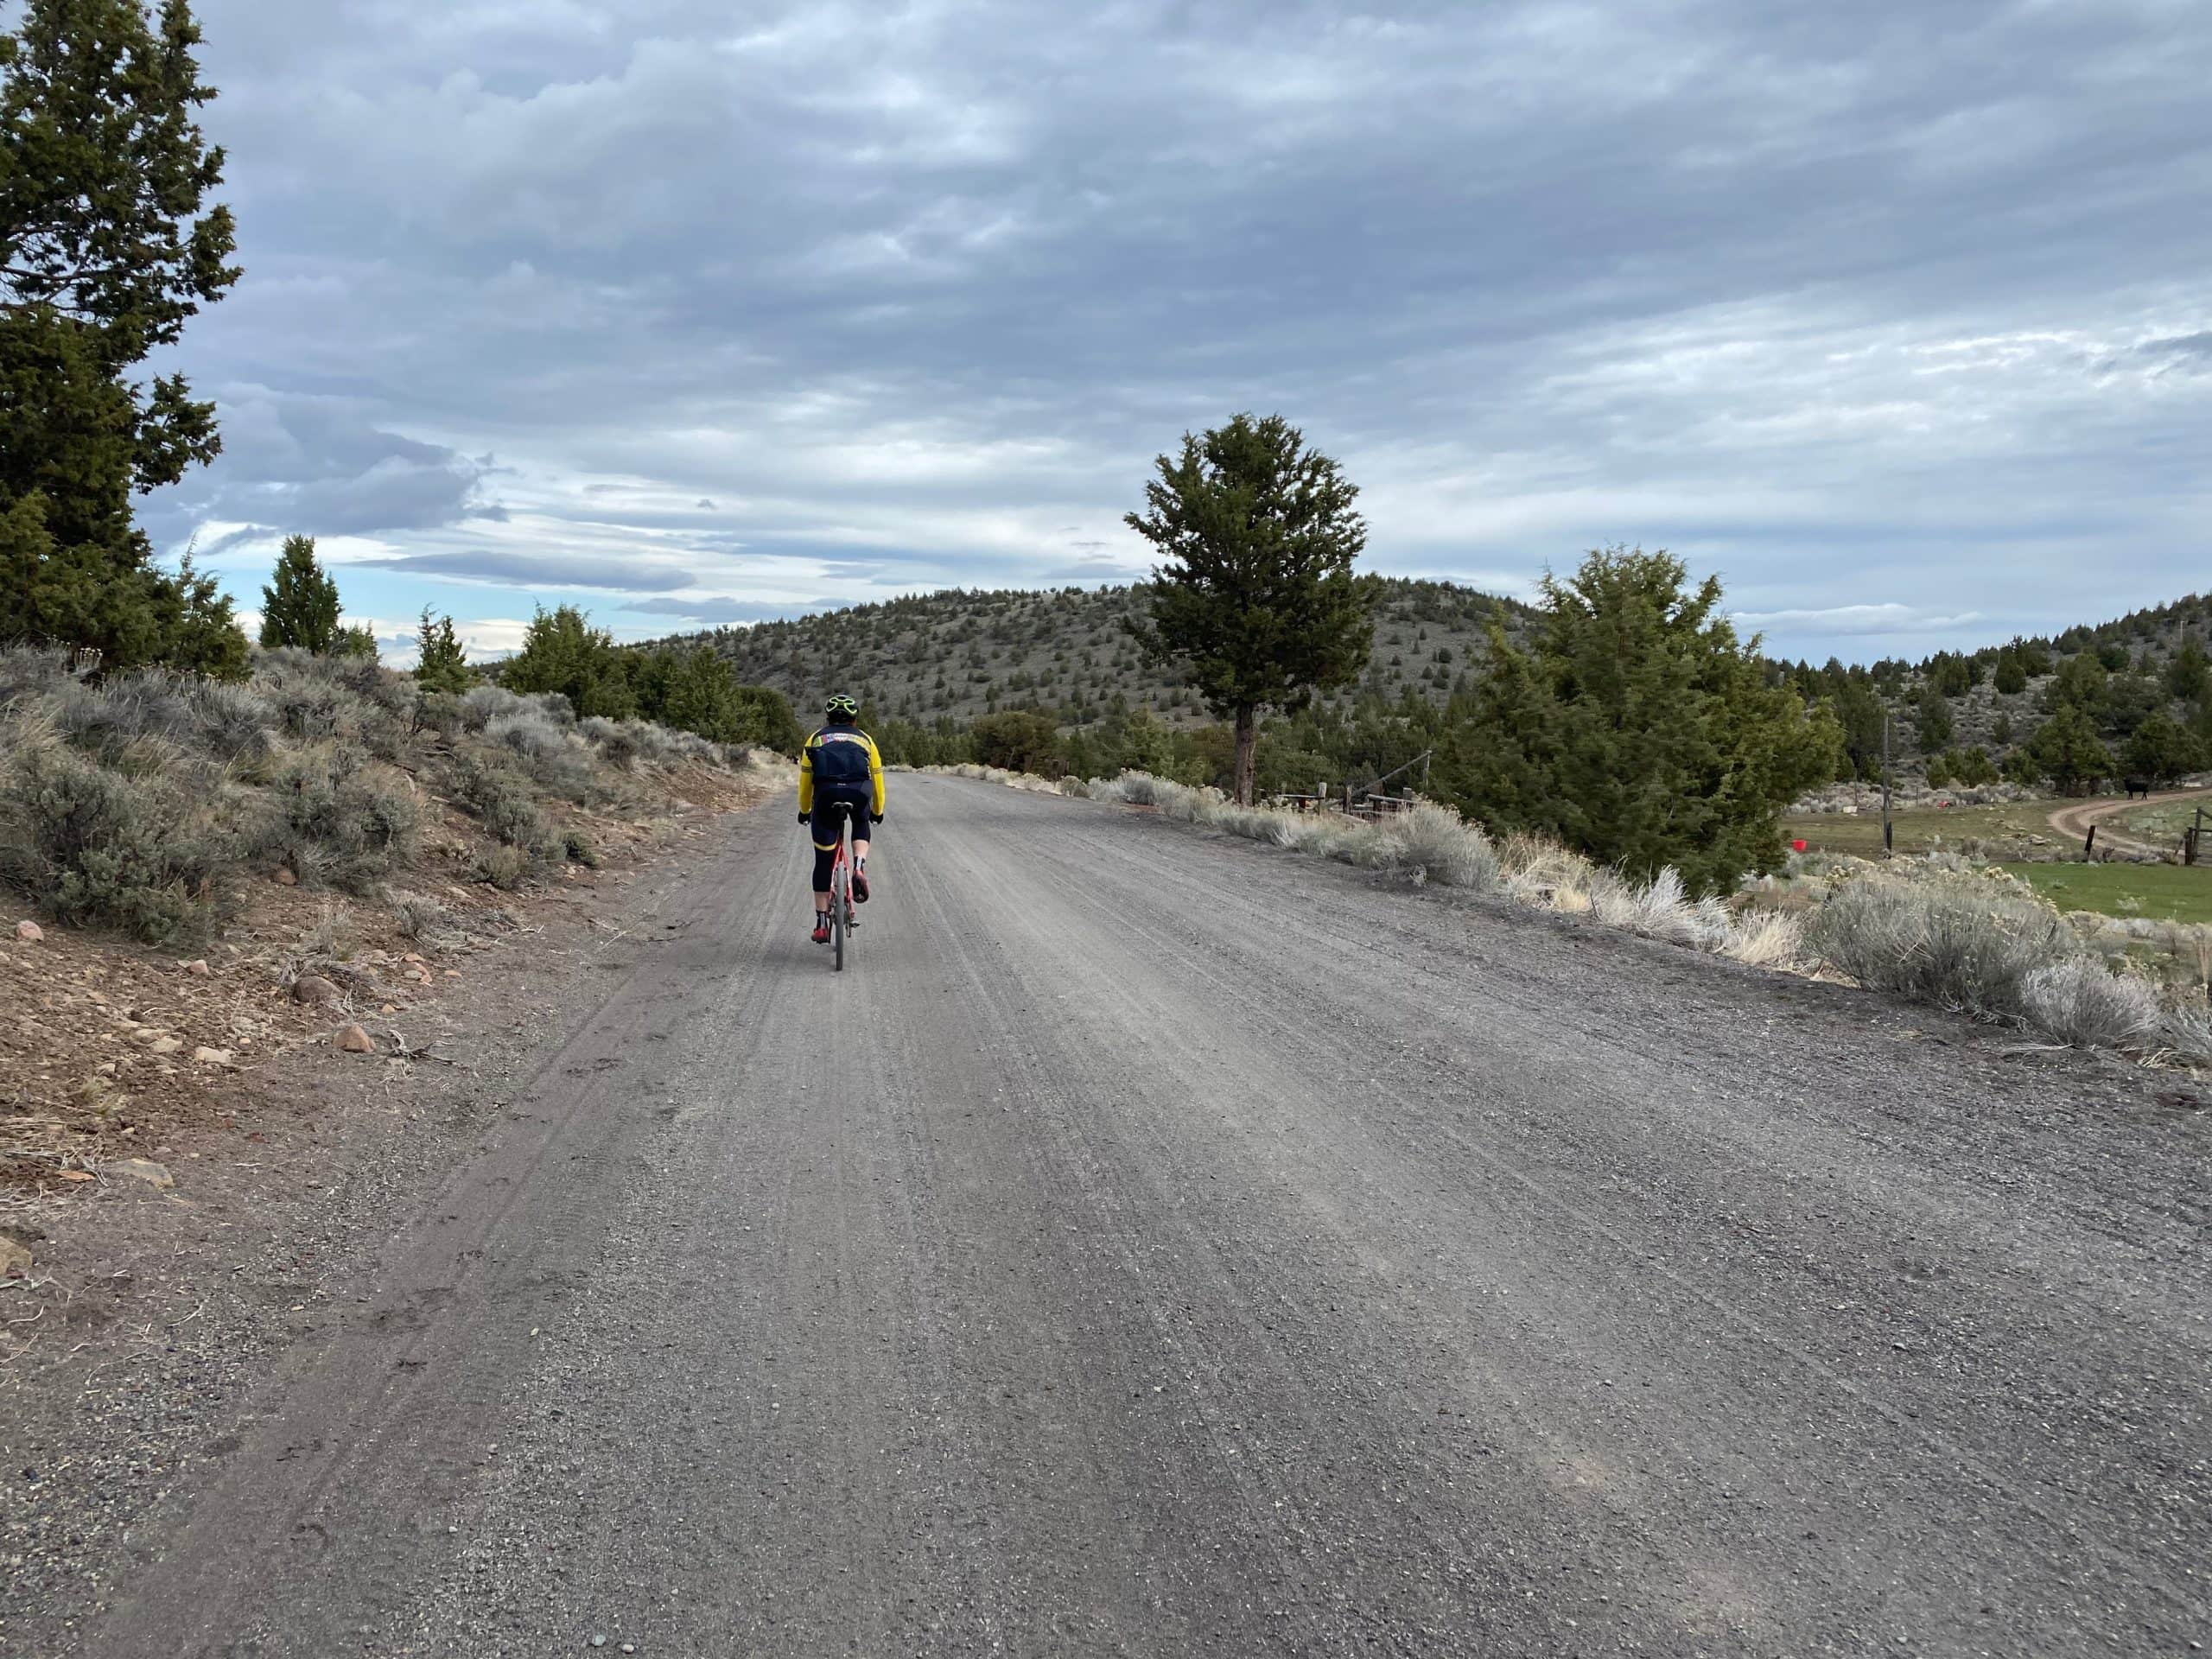 Cyclist riding Pine Mountain road towards Highway 20 near Bend, OR.